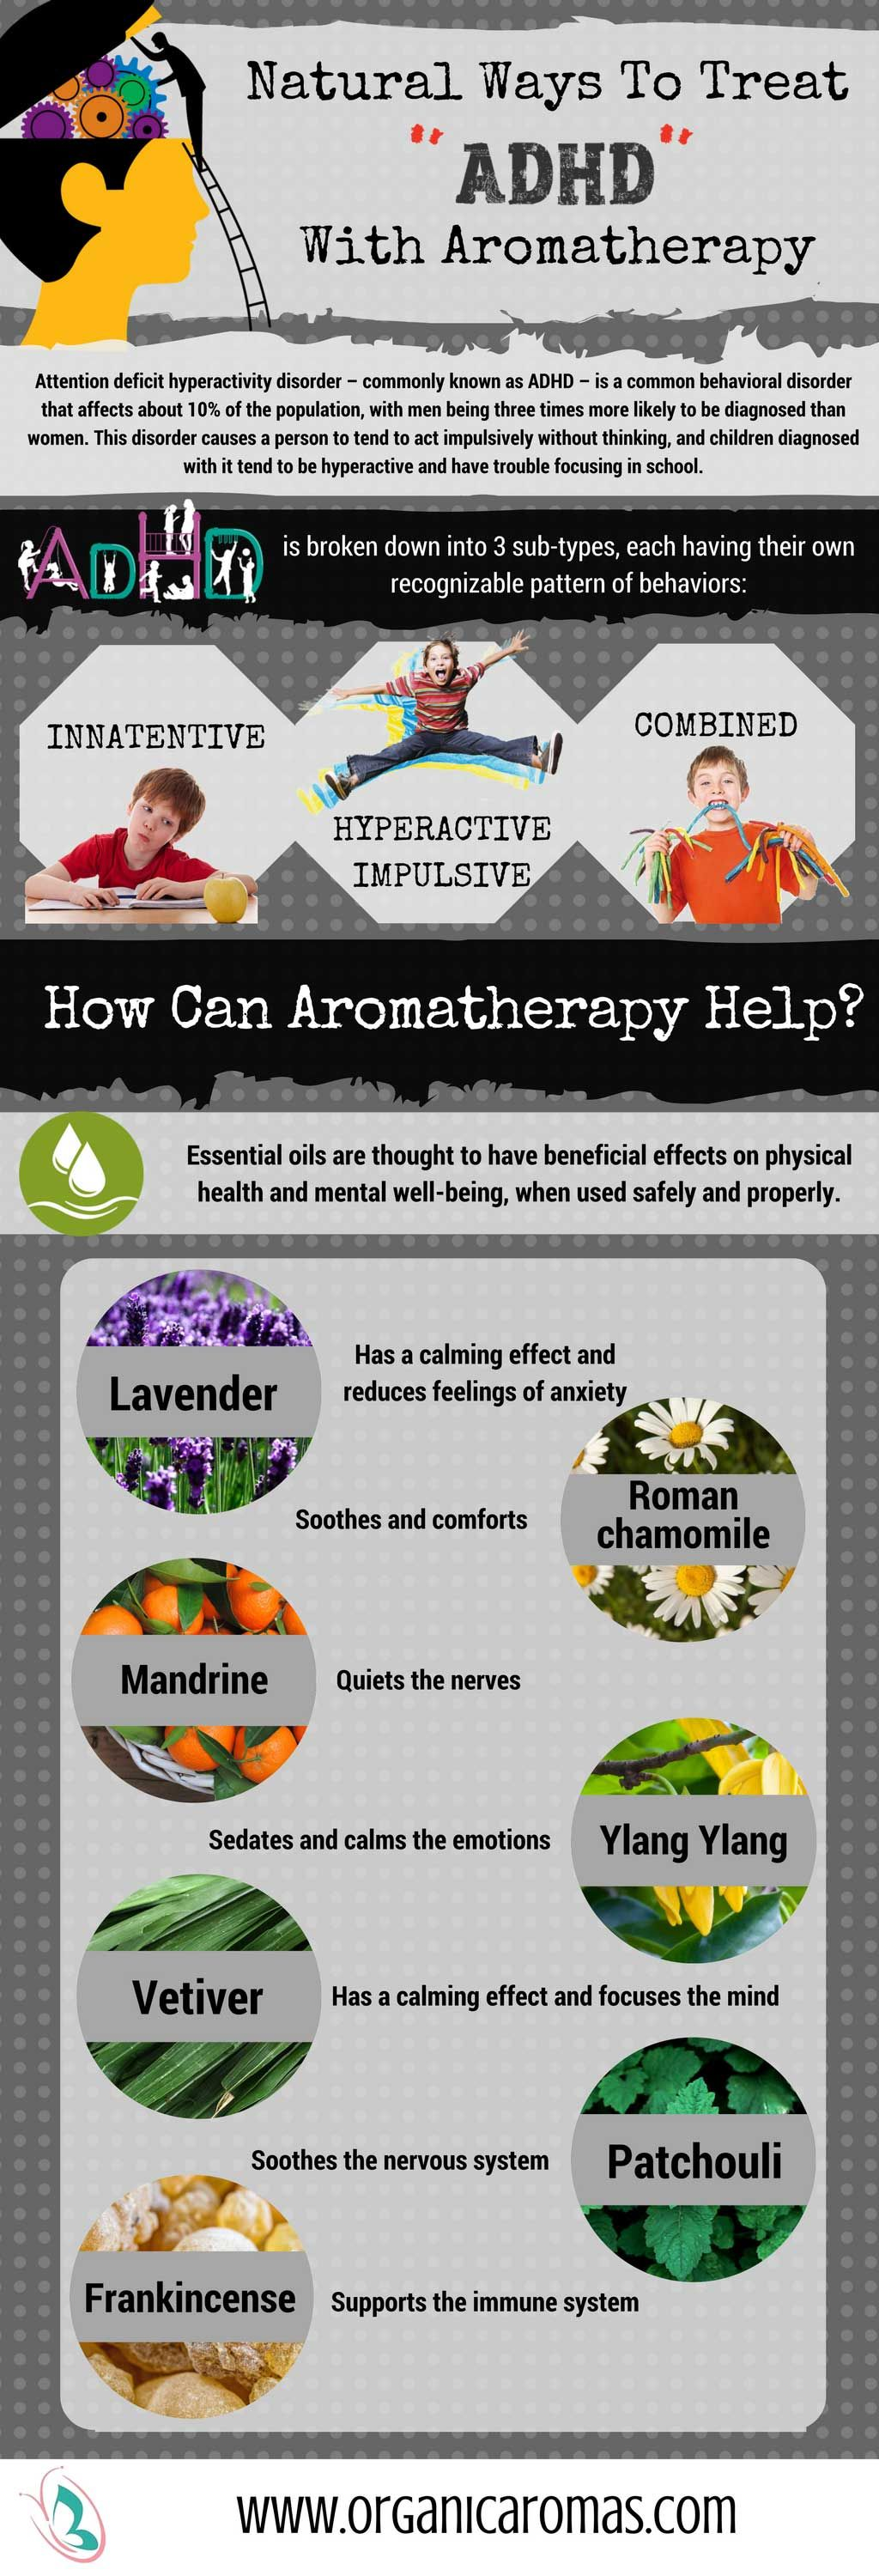 Natural Ways To Treat Adhd Using Aromatherapy